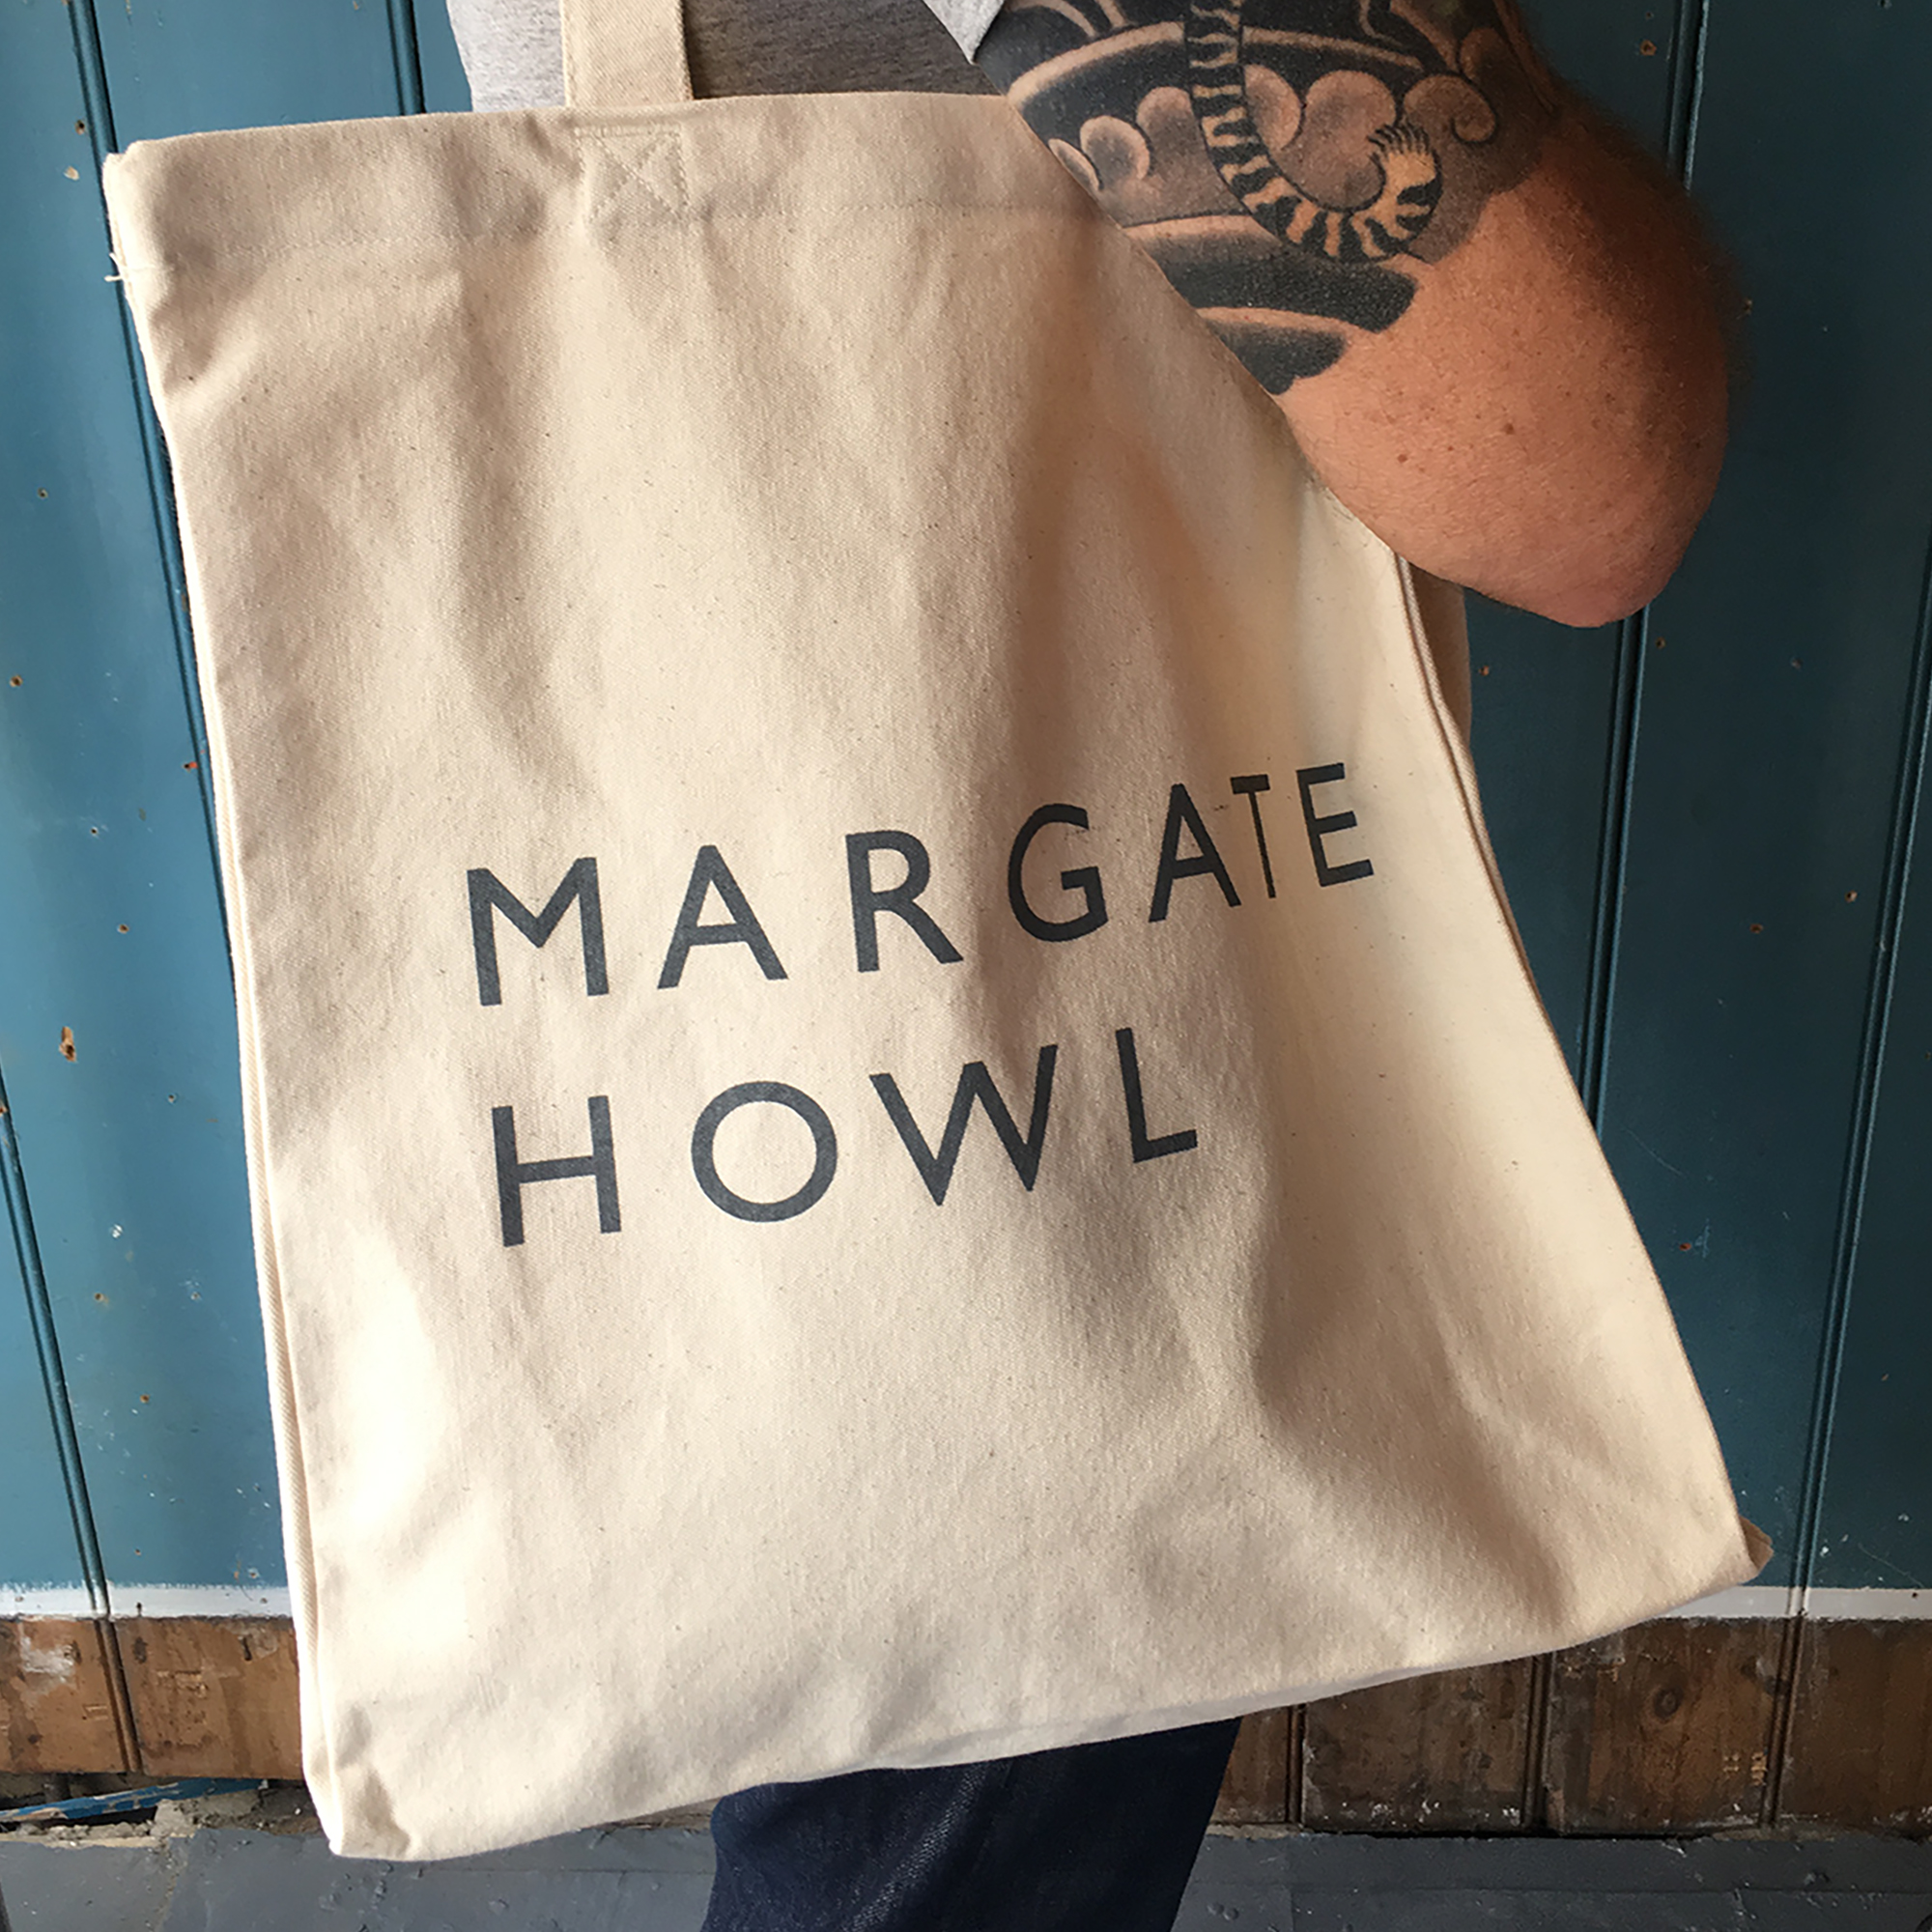 Margate Howl Tote